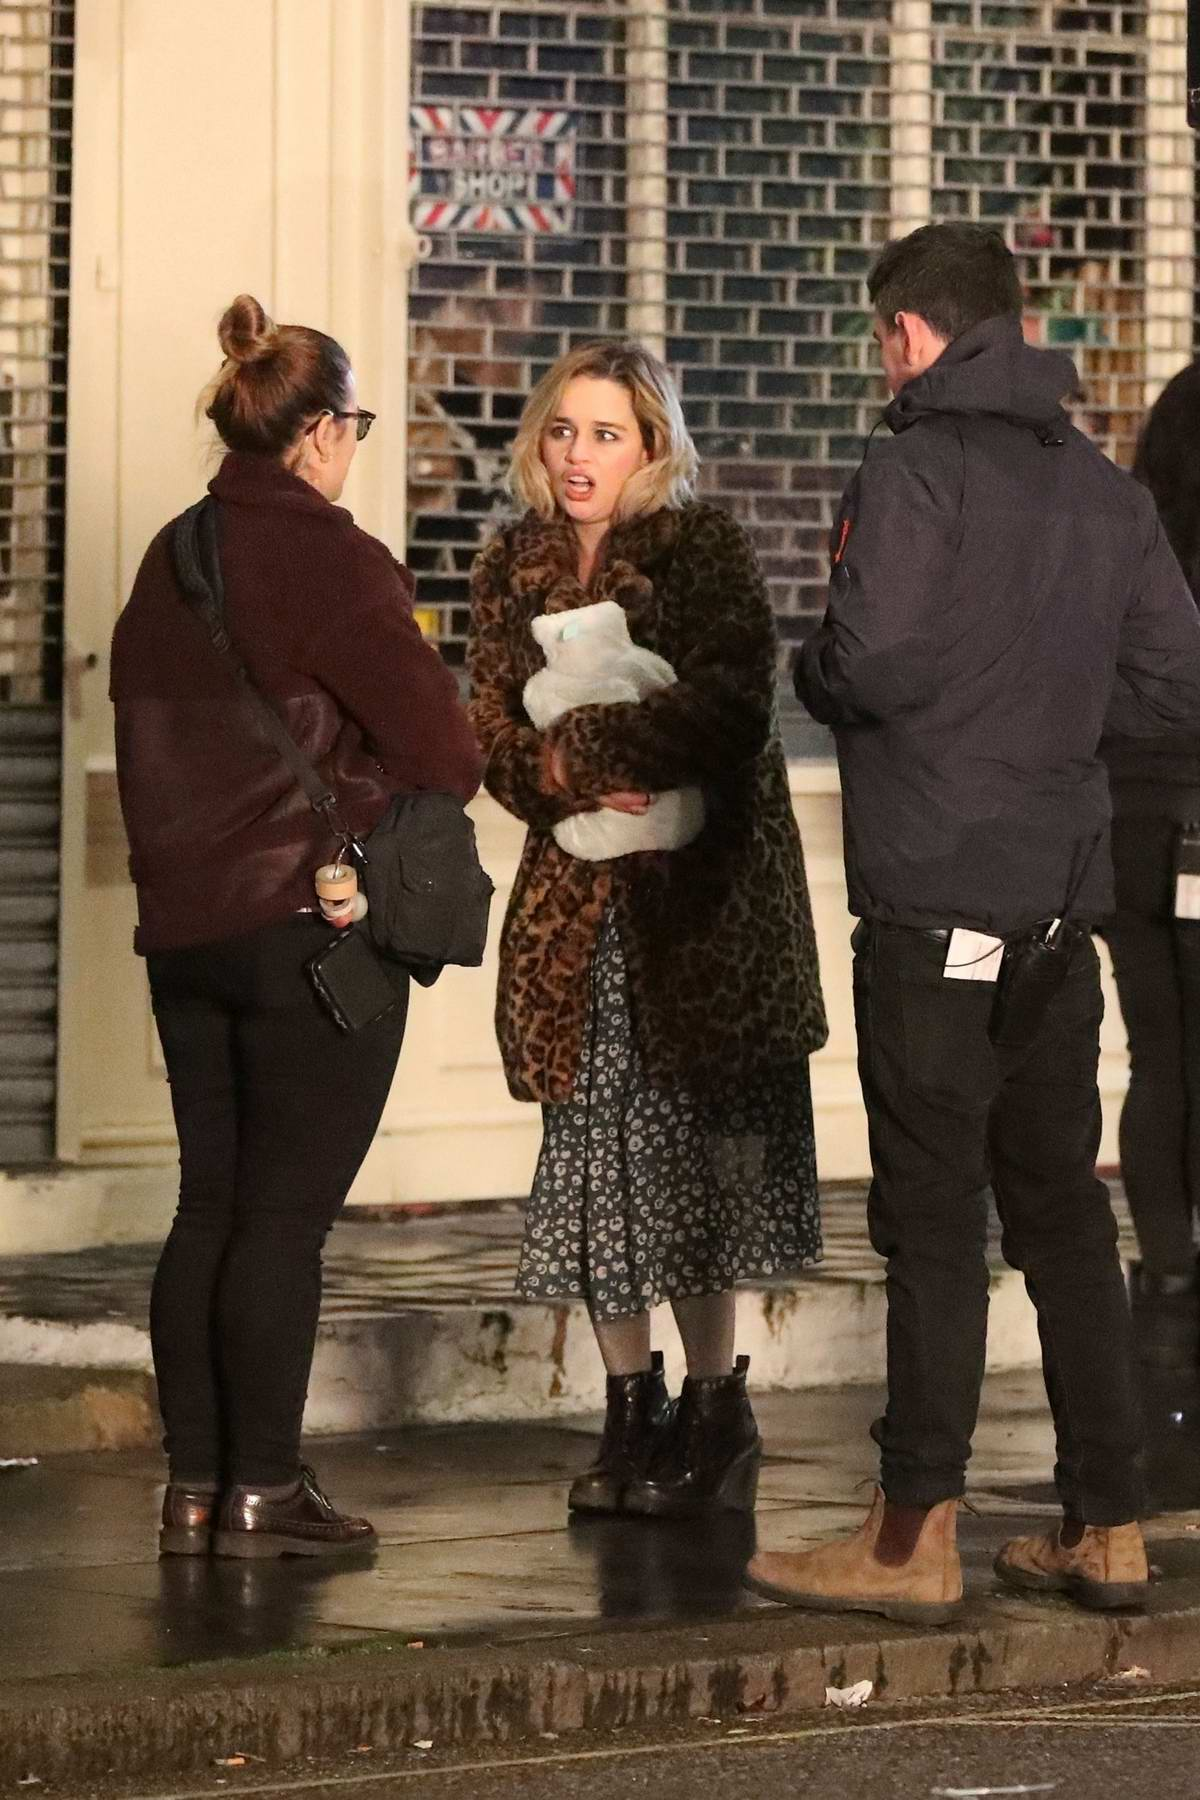 Emilia Clarke spotted in a leopard print fur coat while filming 'Last Christmas' outside a pub in North London, UK